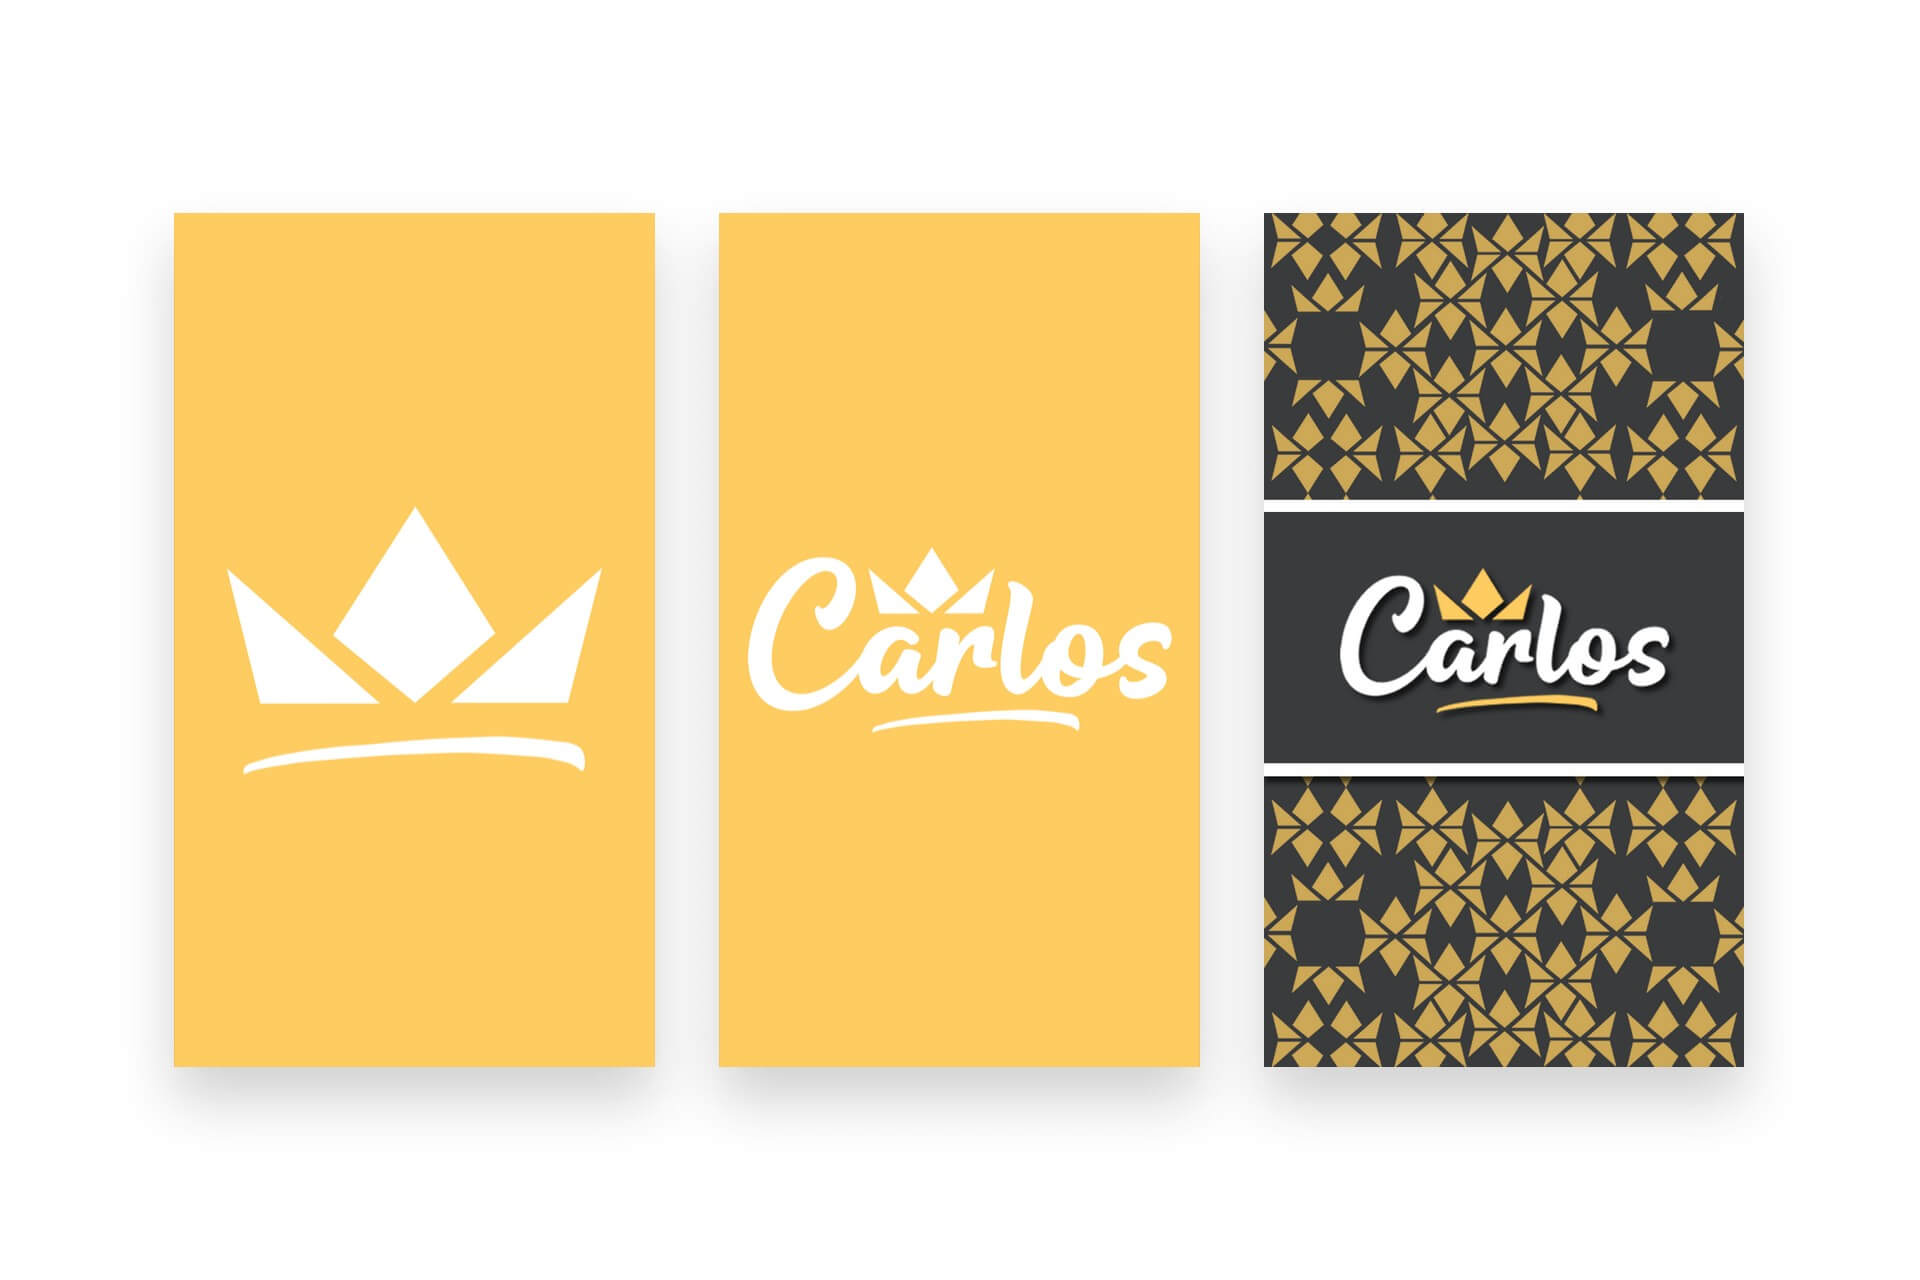 Carlos Logo Lockups | The Logo Creative - International Brand Identity Design Studio